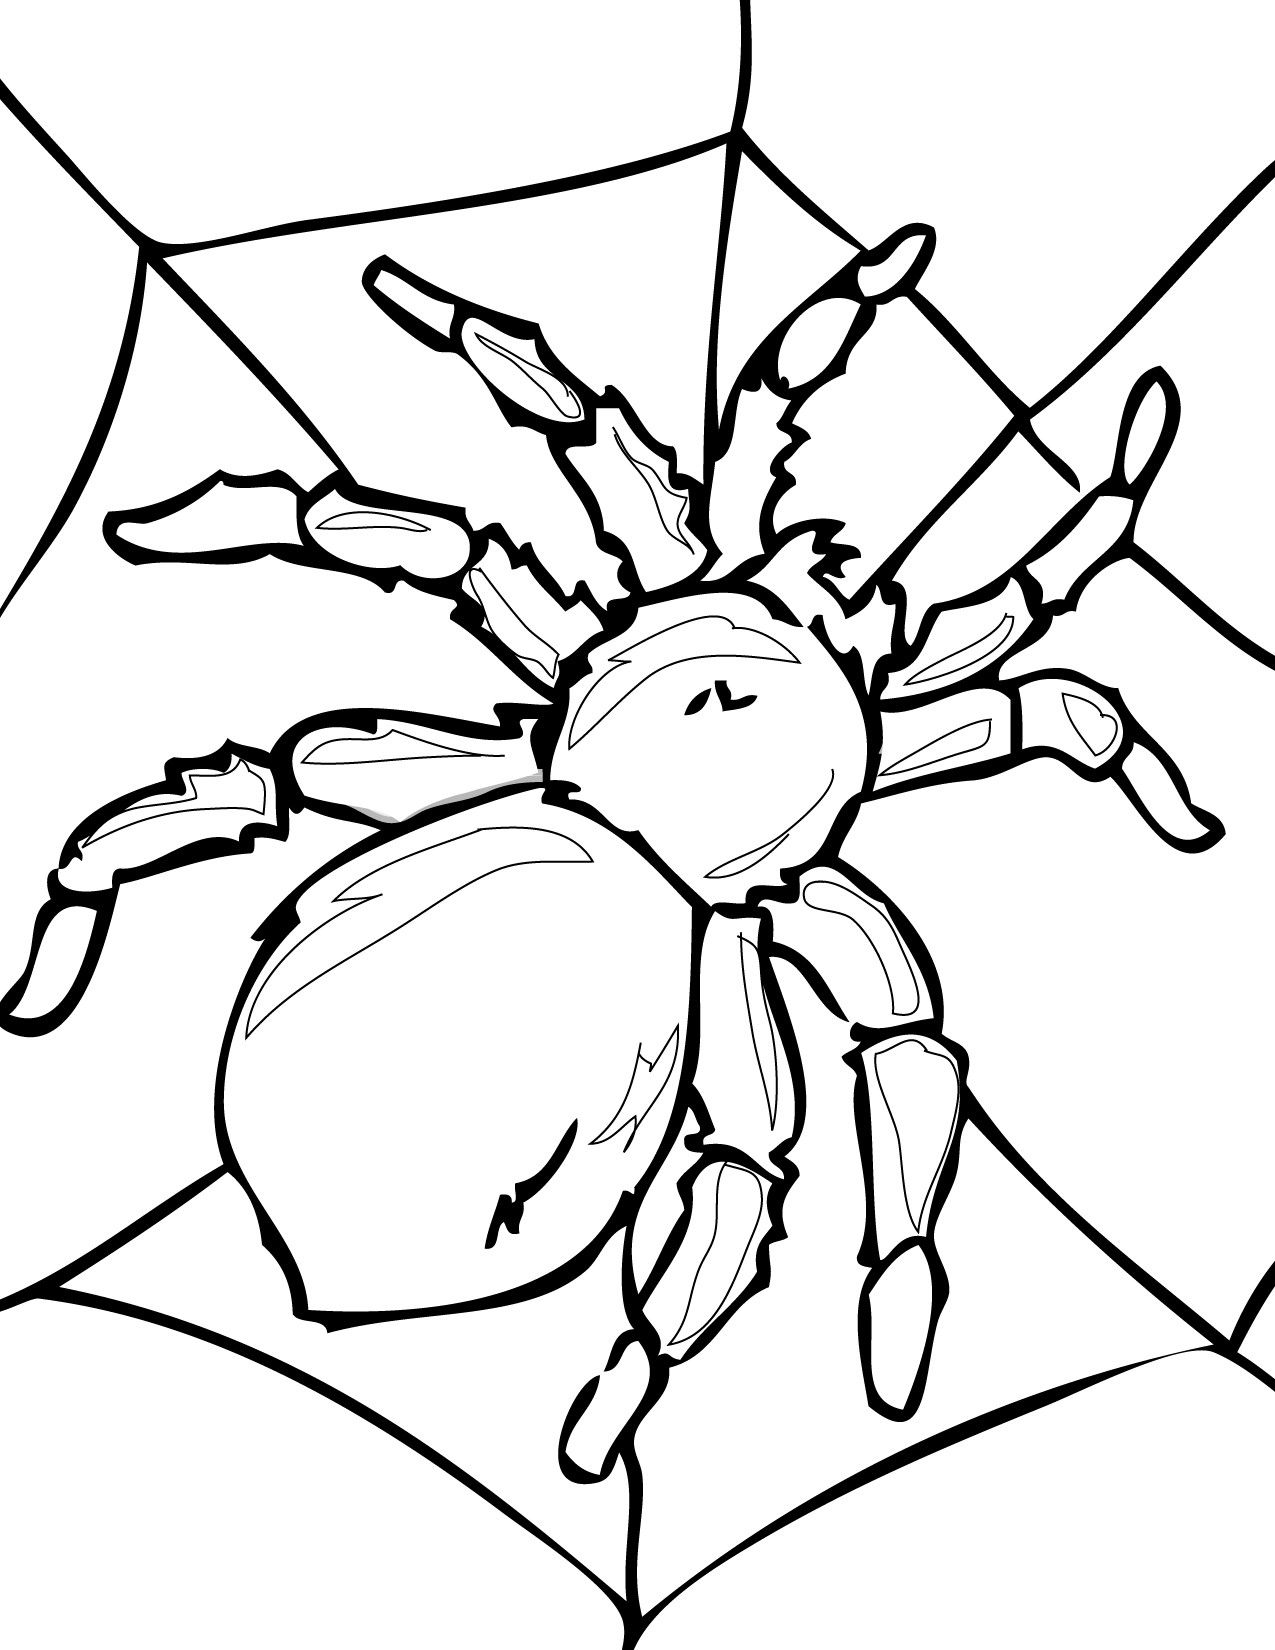 Spider Coloring Pages Free Coloring Pages Download   Xsibe itsy ...